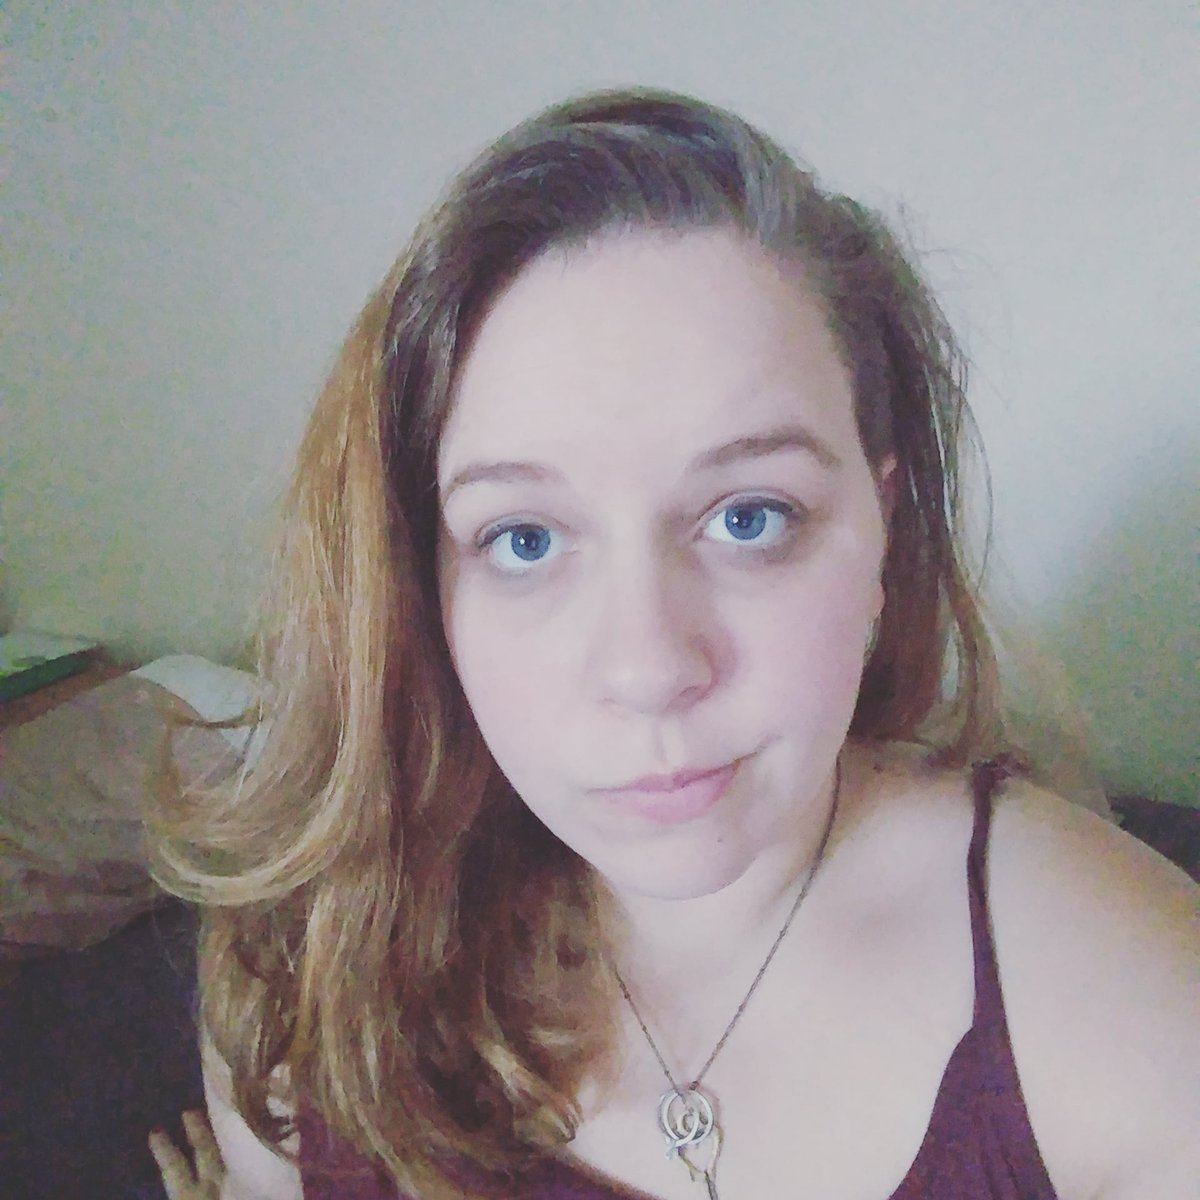 BelleBunny - If I'm honest I feel like I'm falling apart. My body is truly going through a really rough patch and I have been trying to deny it and it's affect on my mental state. I am for sure going down hill and have avoided going to my doctors about it.